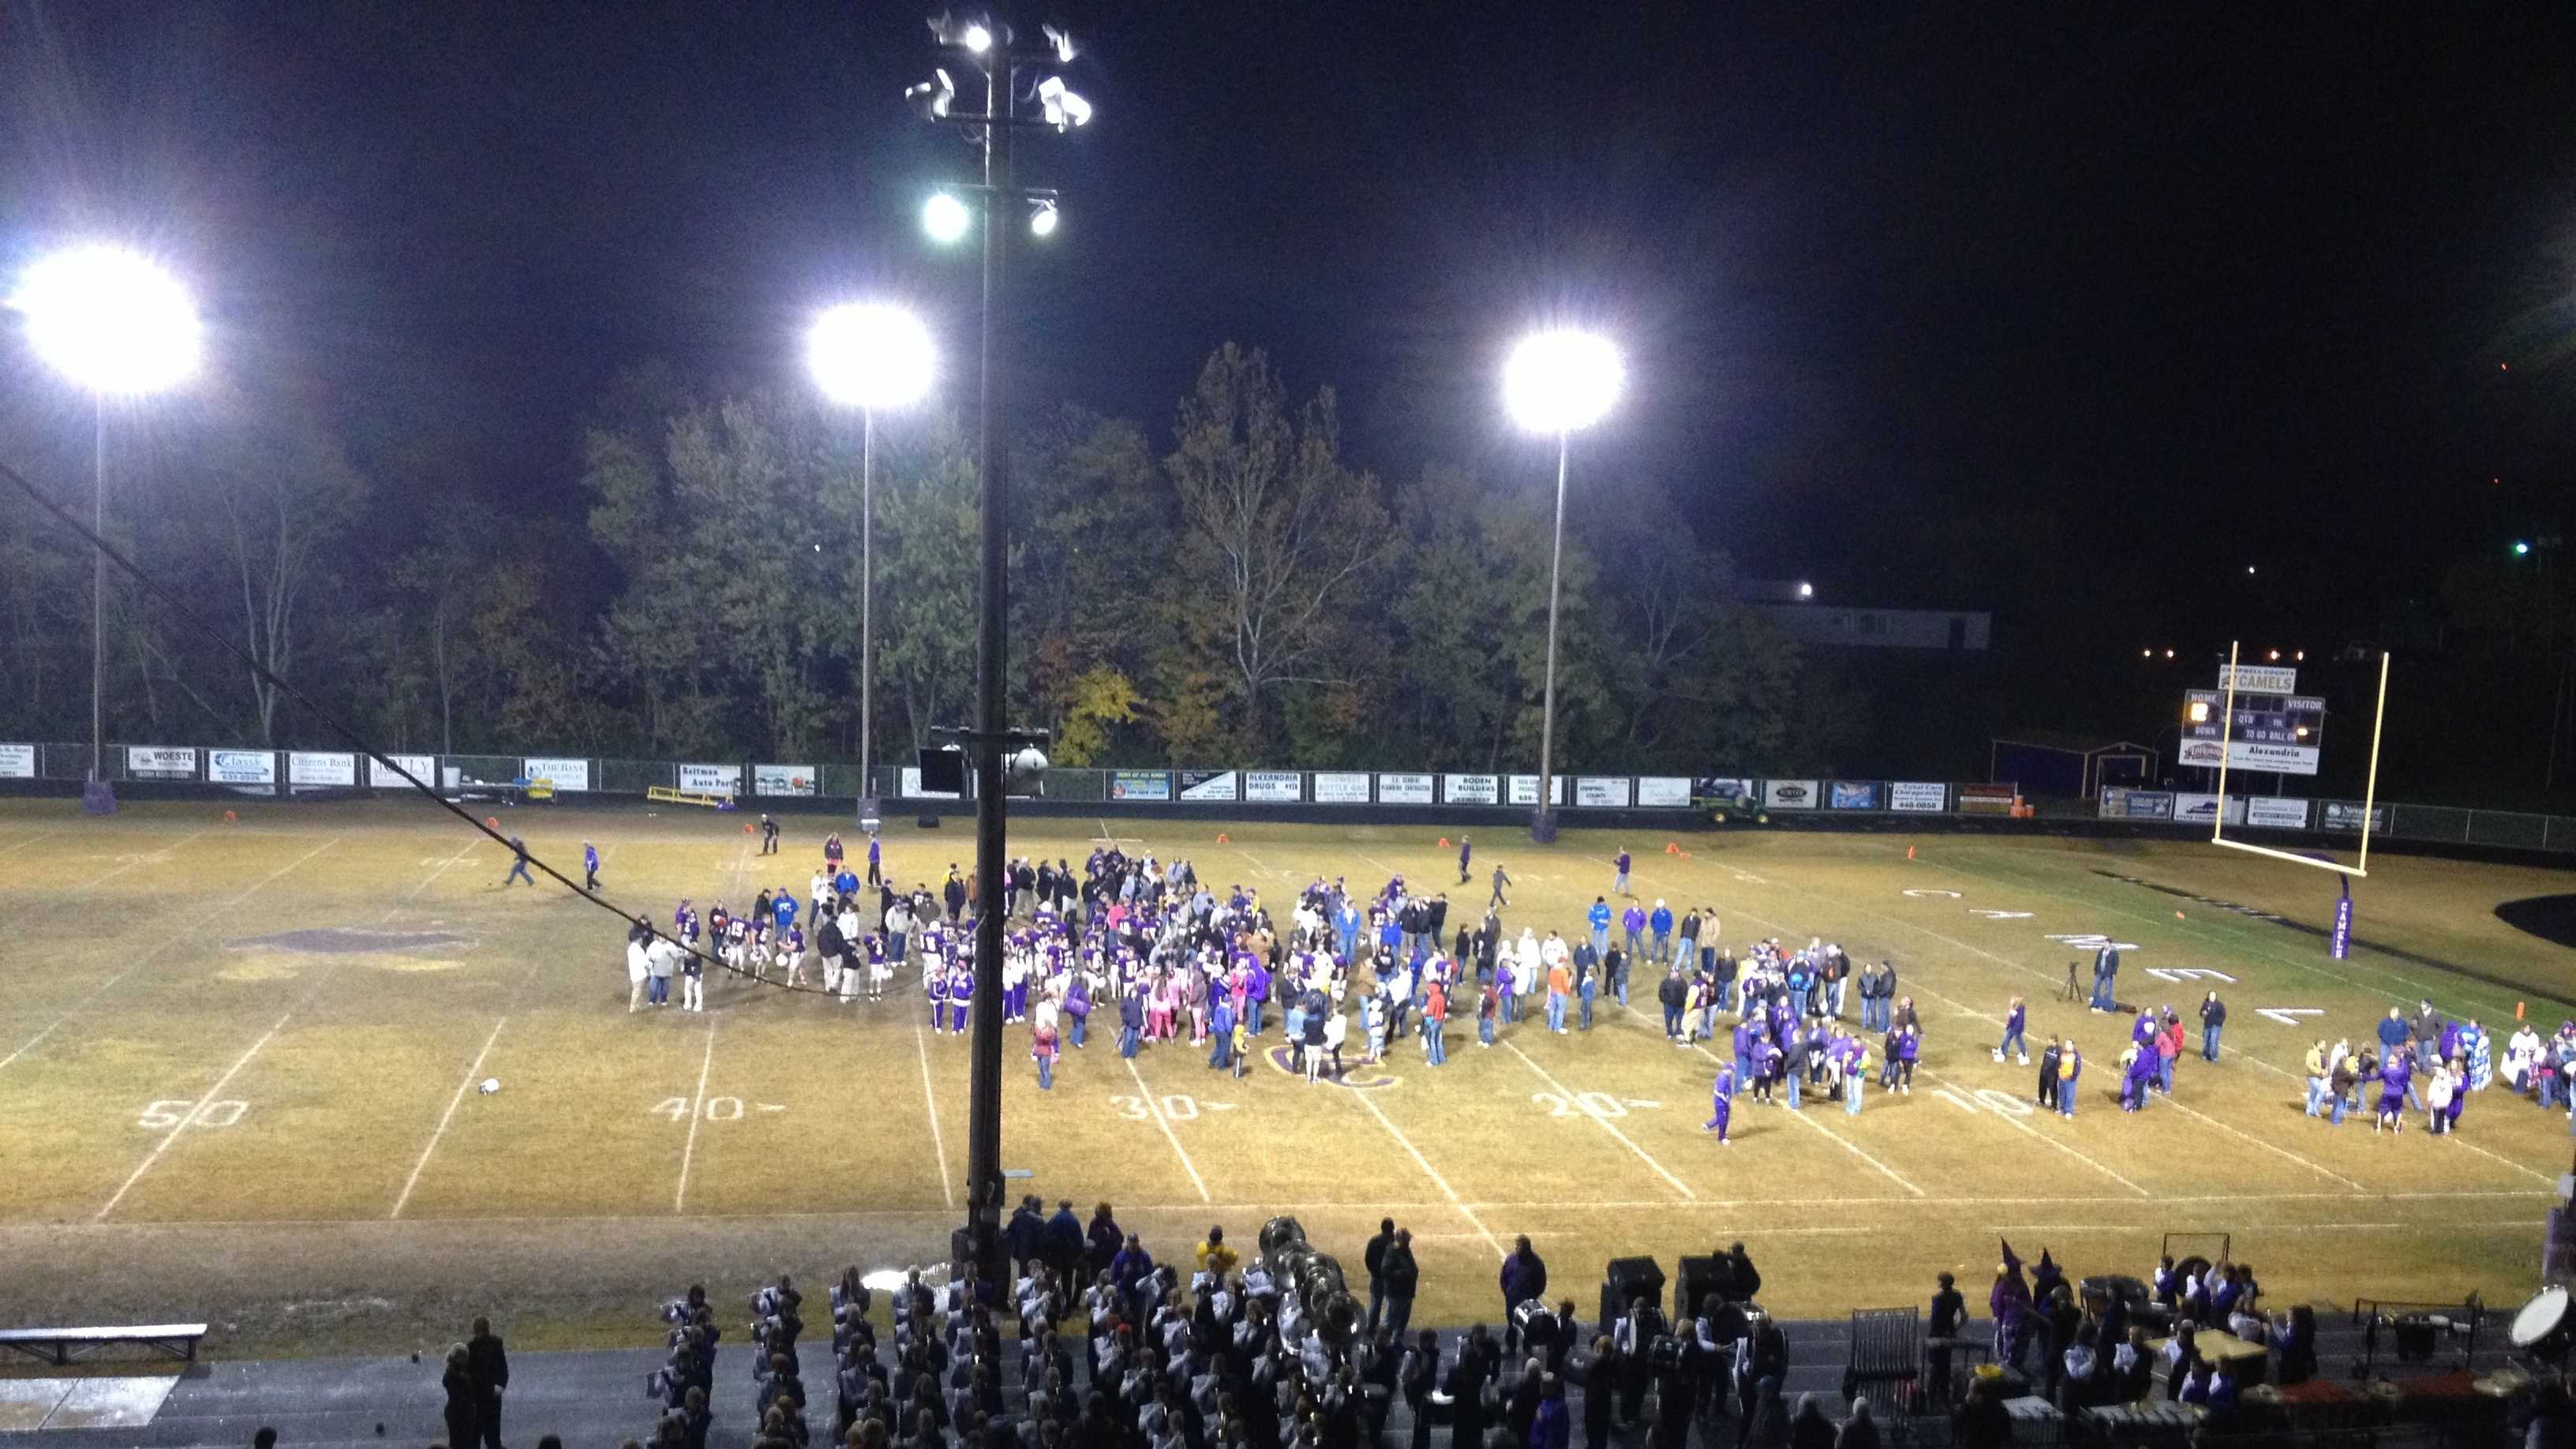 After 69 years, the Campbell County Camels played their final regular season game at Bob Miller Stadium in Alexandria on Friday night.